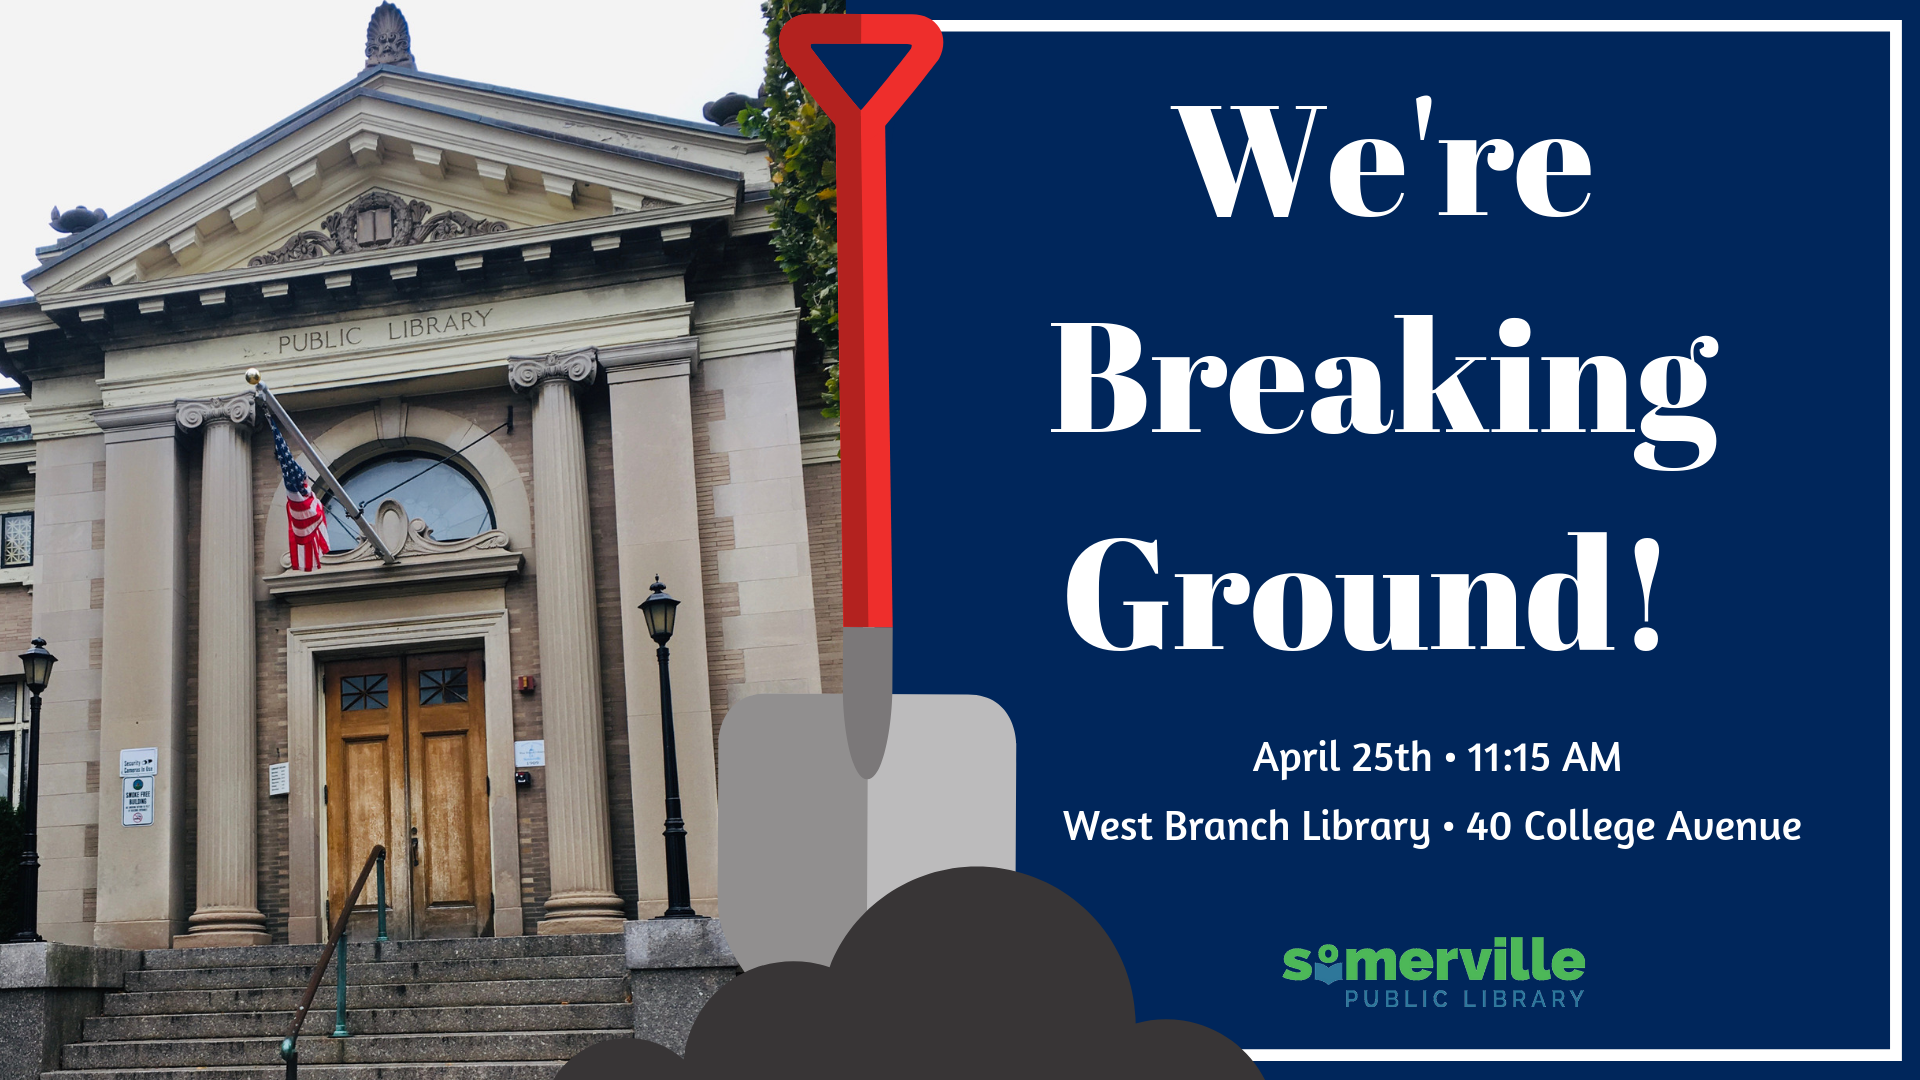 We're breaking ground! April 25th at 11 a.m. at the West Branch Library (40 College Ave.)